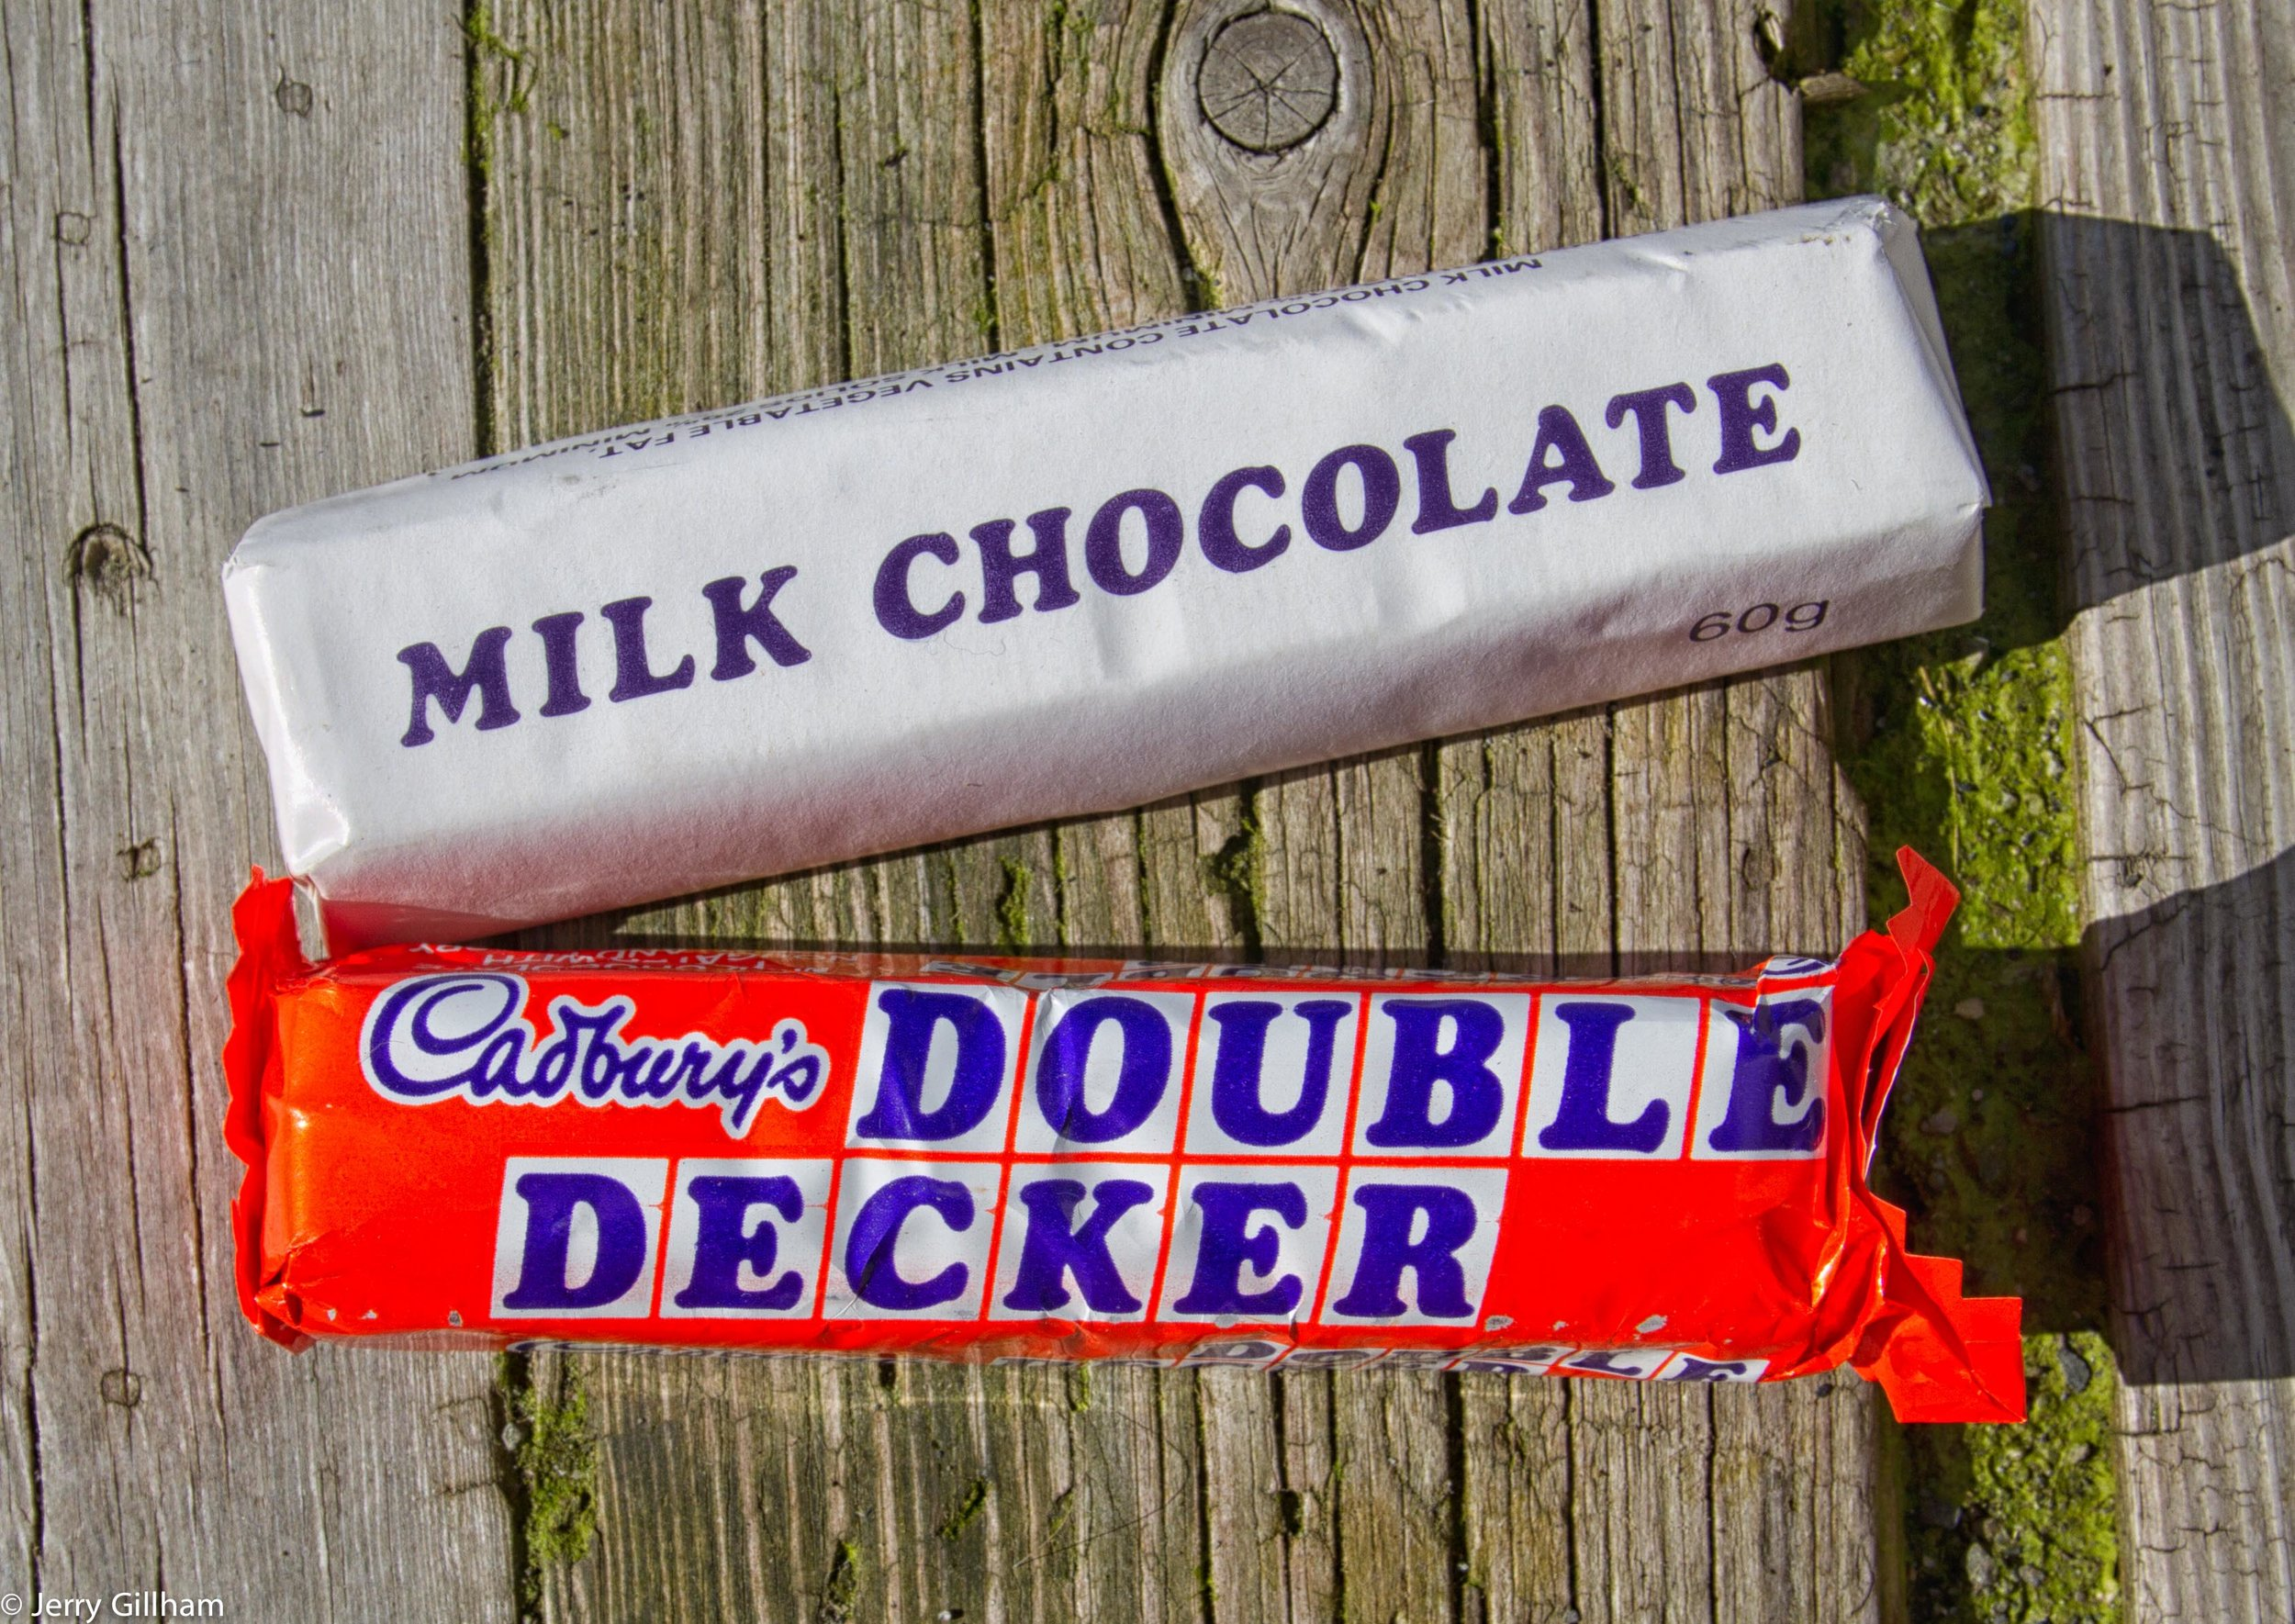 Amongst the gems, an old-style Double Decker and my favourite type of chocolate bar, a Milk Chocolate.